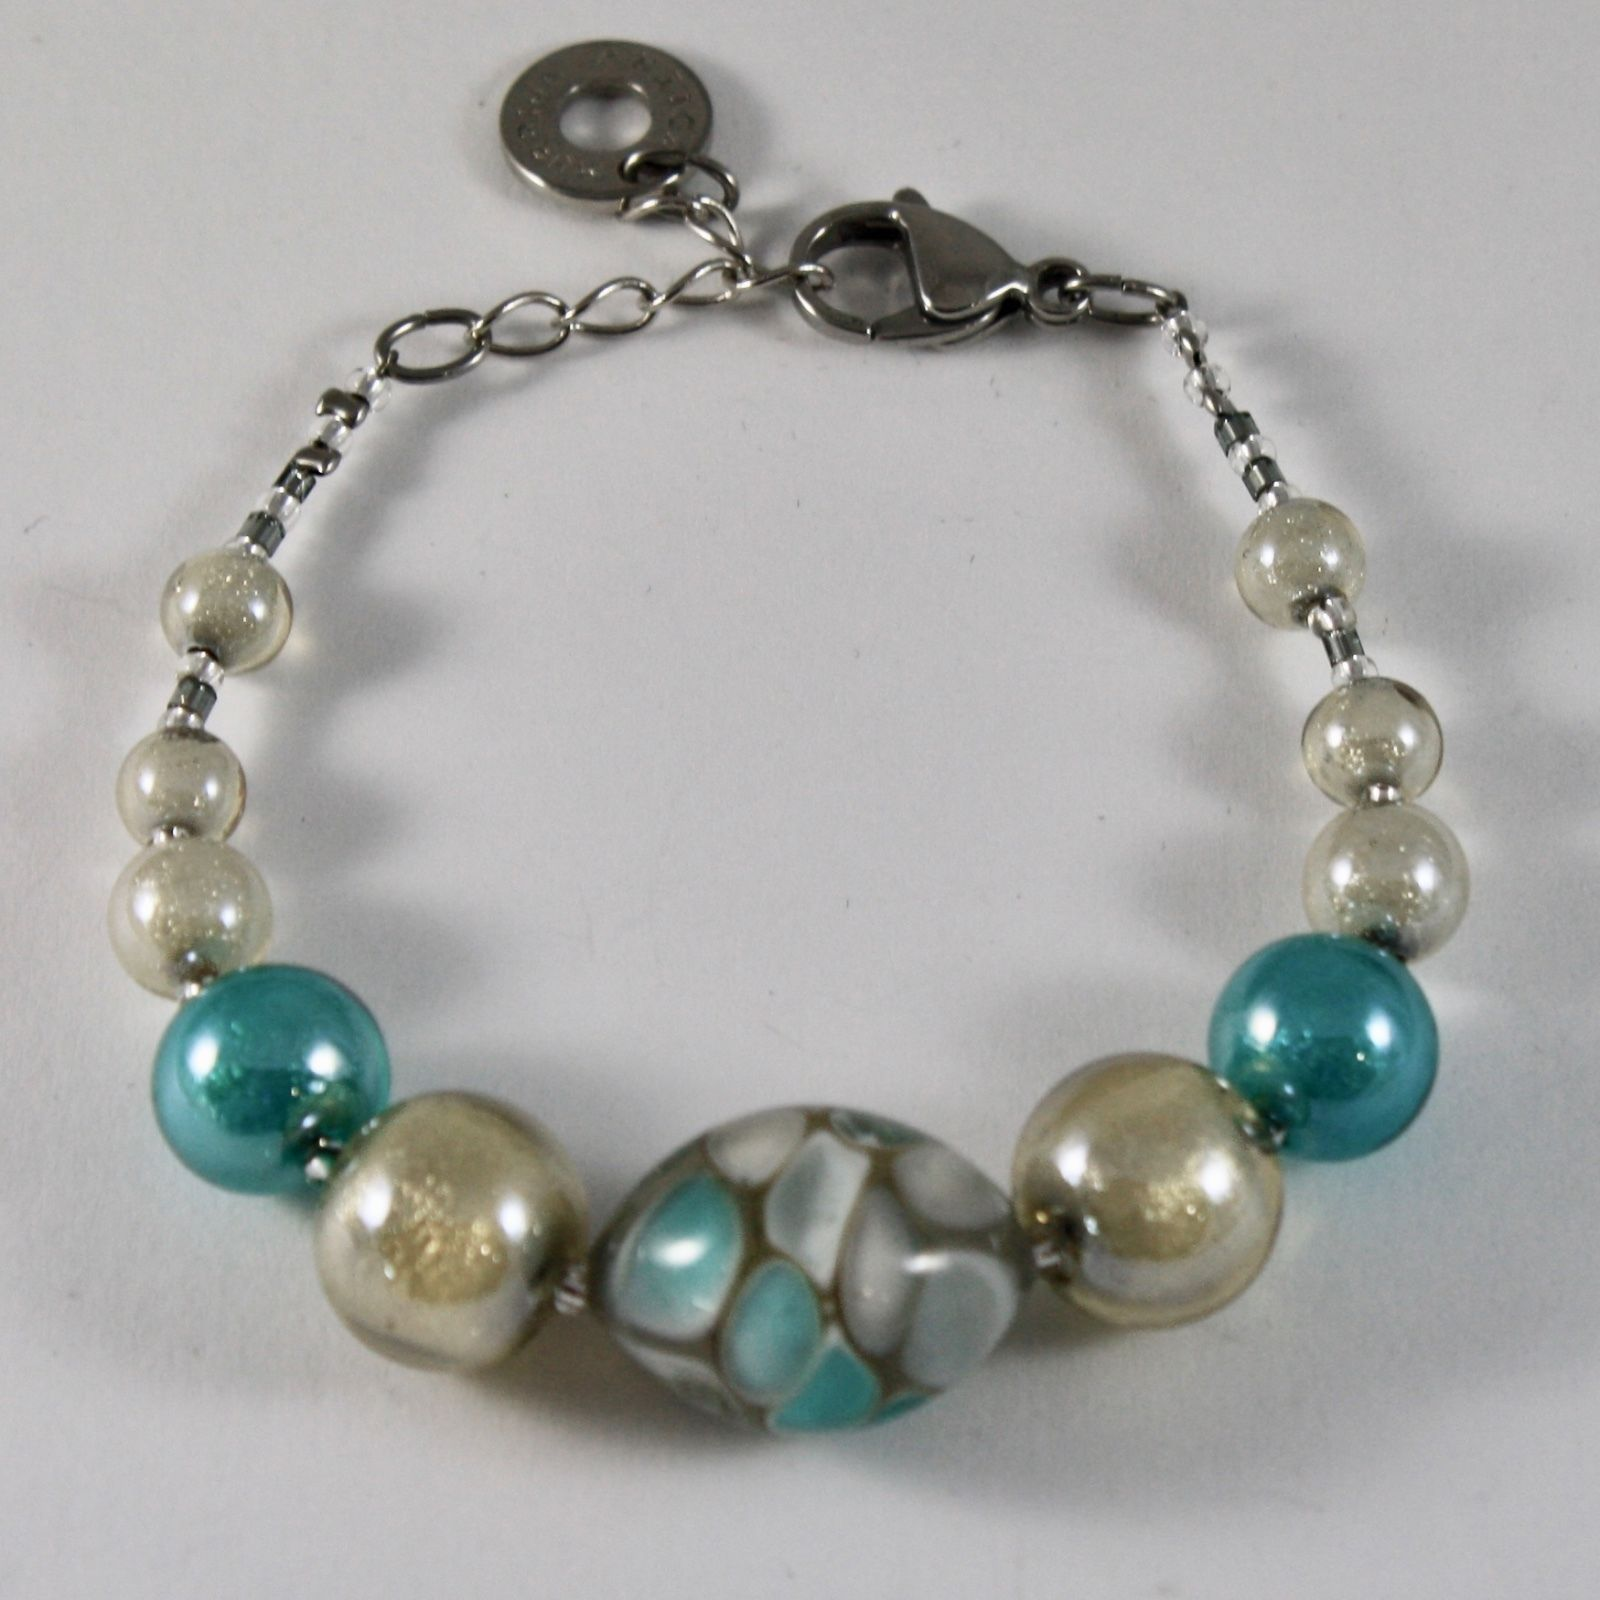 ANTICA MURRINA VENEZIA BRACELET WITH MURANO GLASS BEADS 7.5 INCHES LONG, GREEN